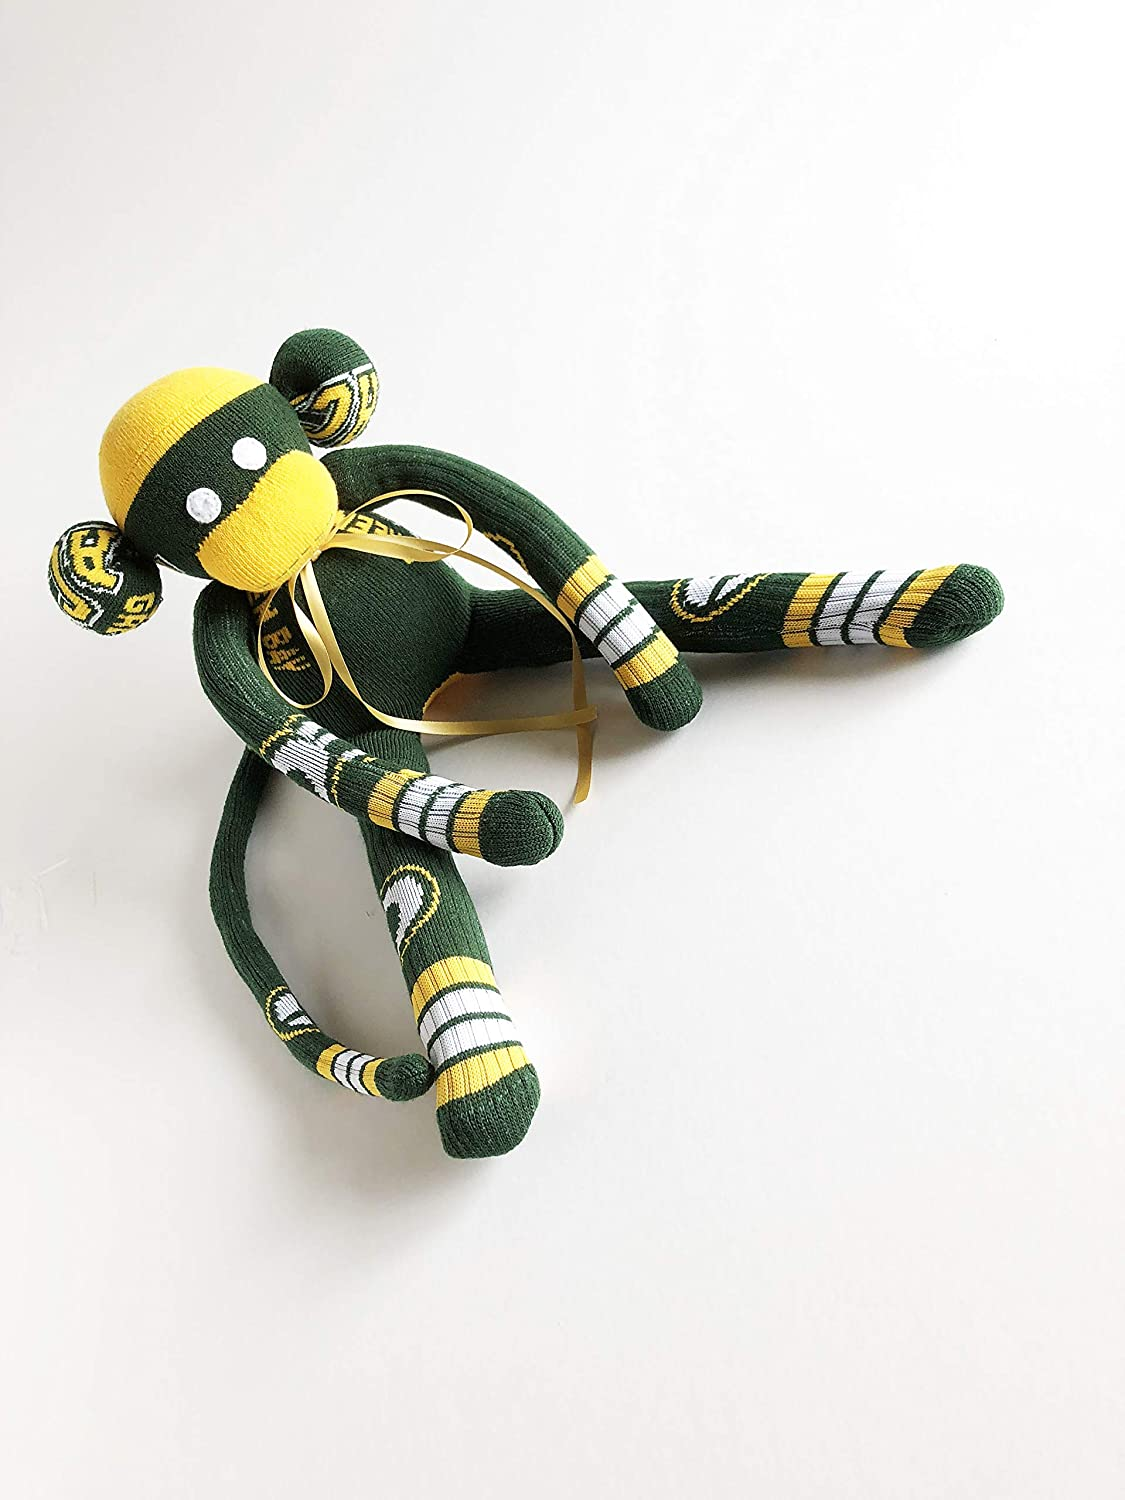 Green Bay Packers Themed Sock Monkey - NFL - Wisconsin - National Football League - Green Sock Monkey - Packer Sock Monkey - Packer Monkey -Green